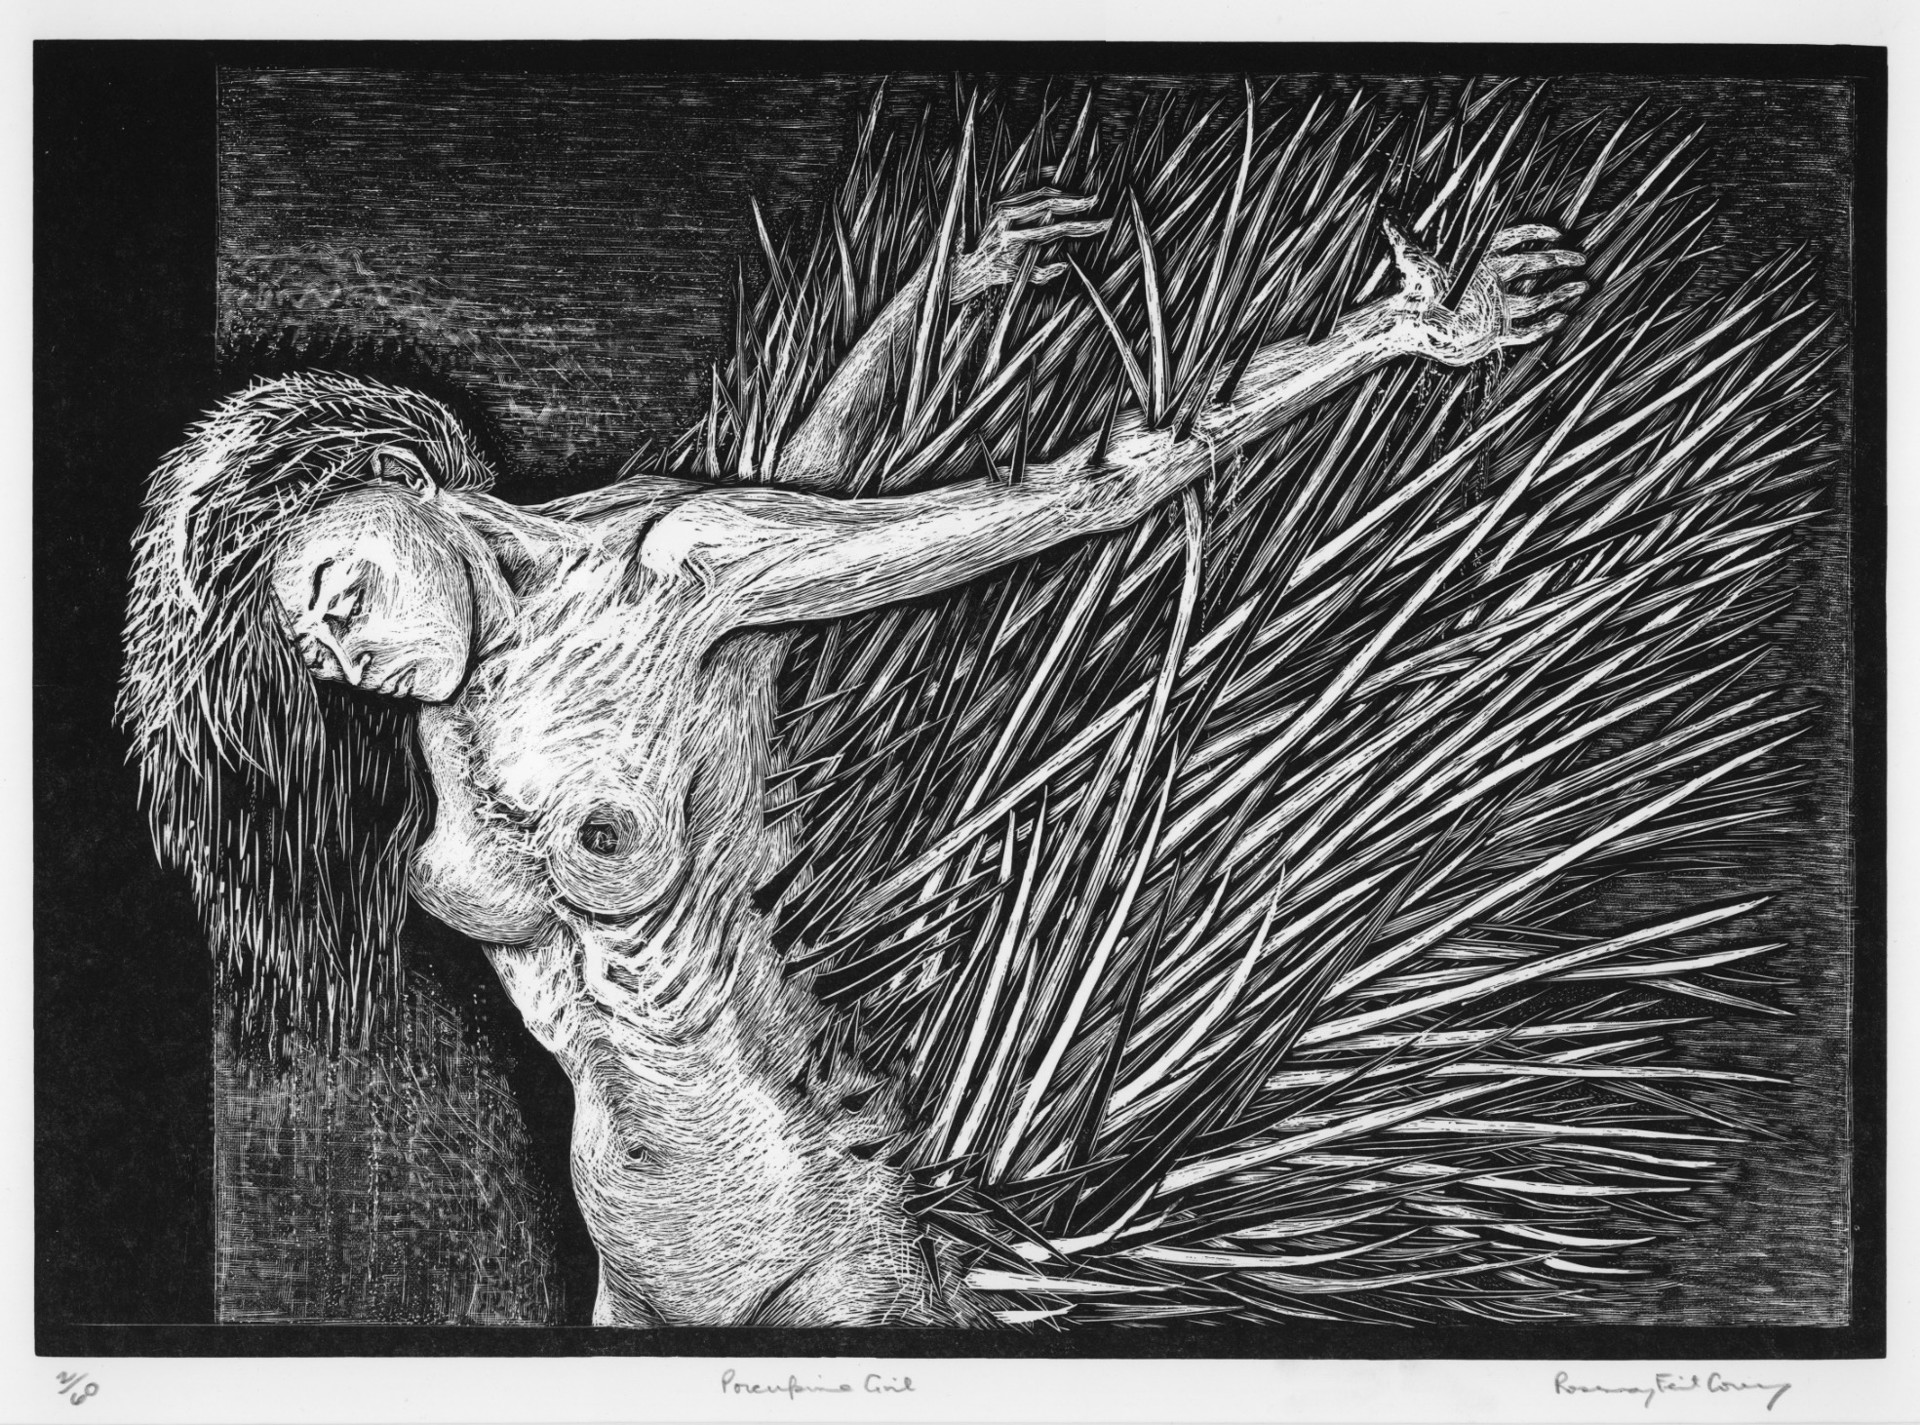 Porcupine Girl (impaled) by Rosemary Feit Covey